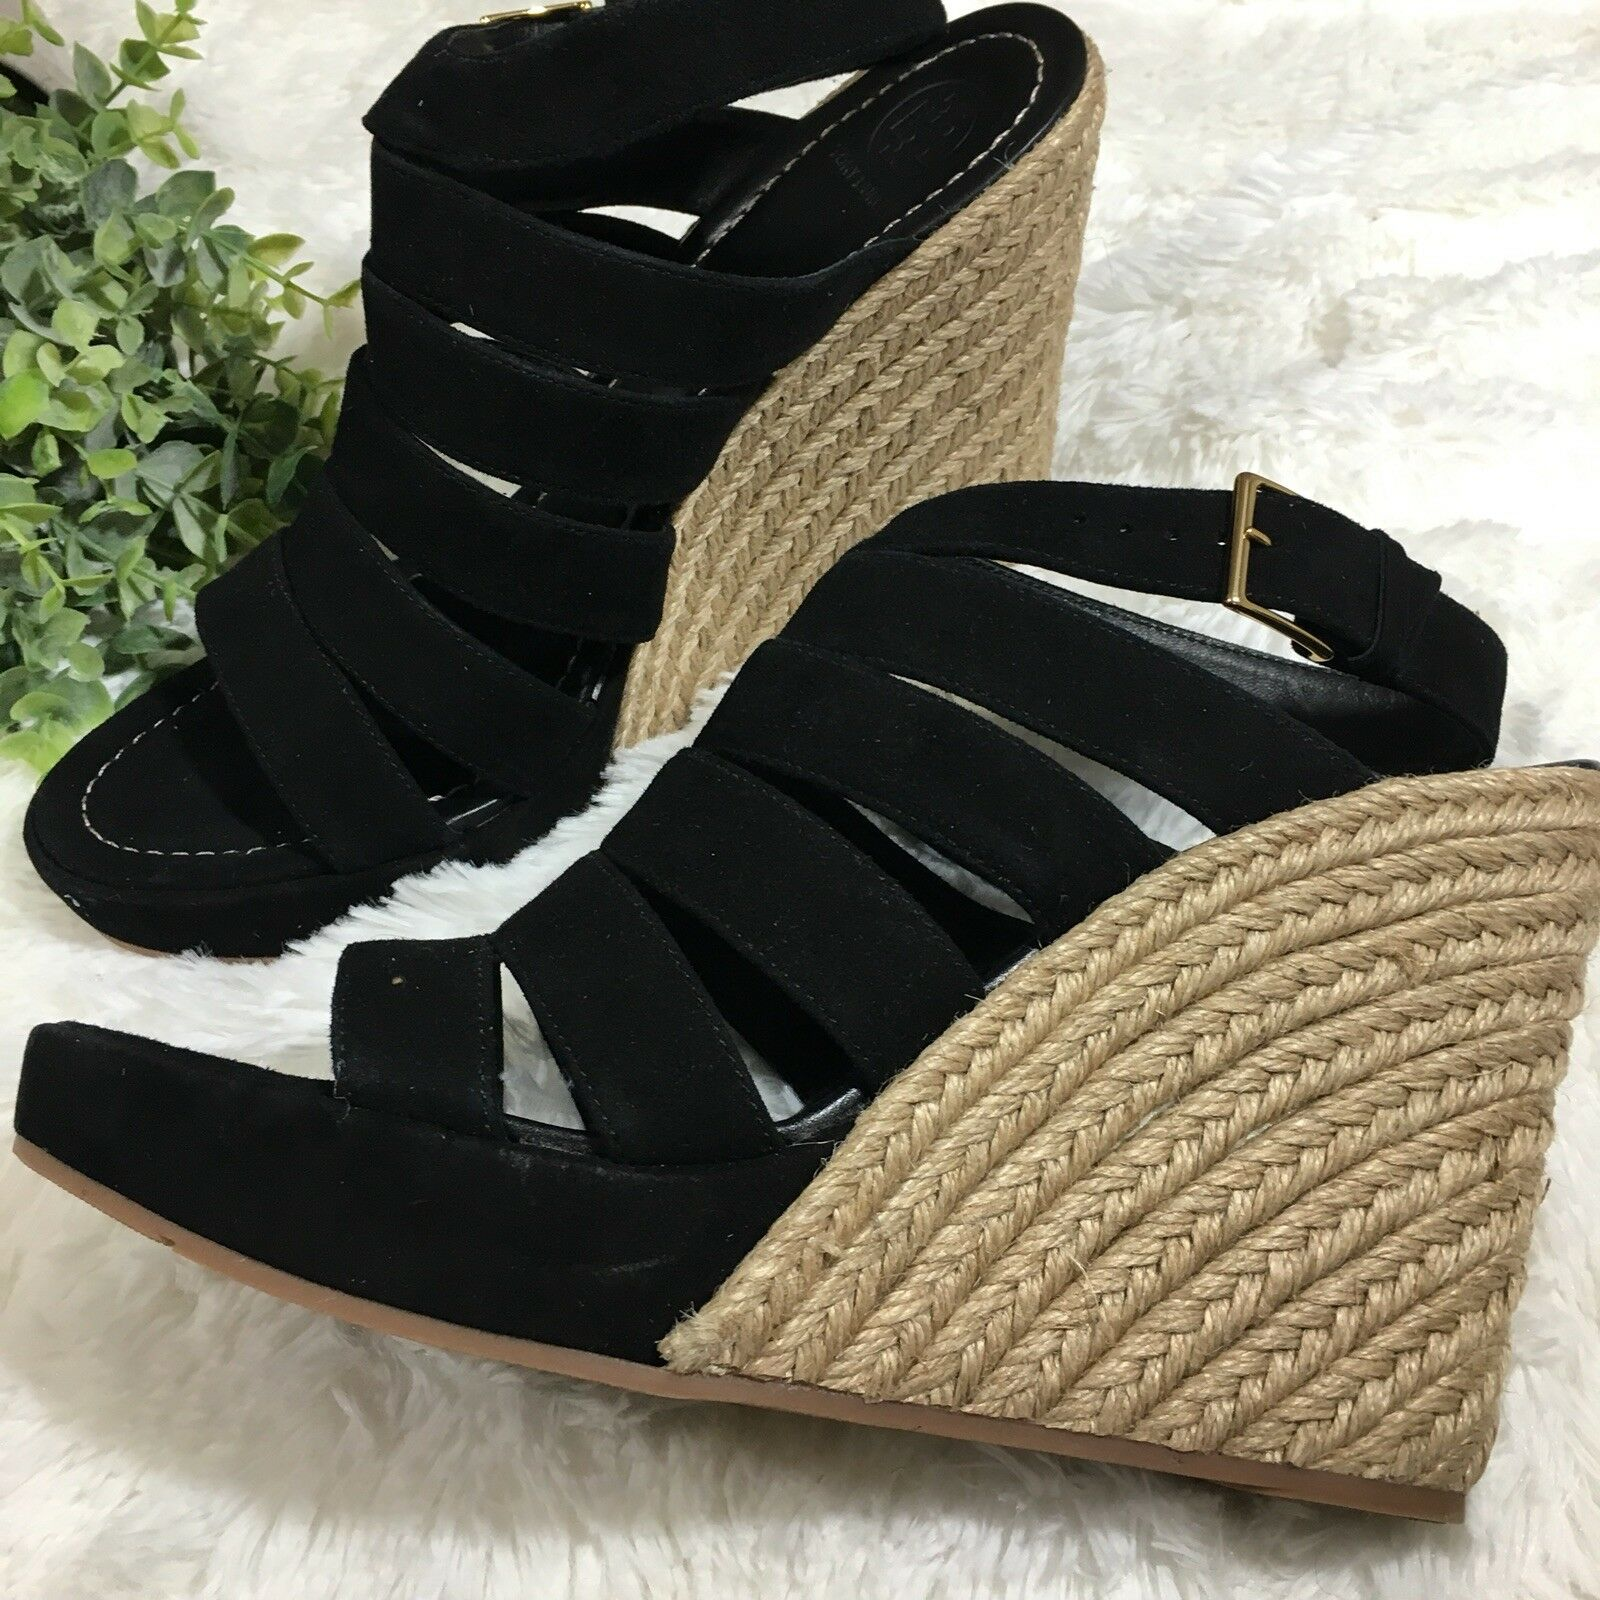 Tory Burch Bailey Multi Multi Multi Steal Wedge Espadrille Sandals Dimensione 10.5 Retail  358 000d73